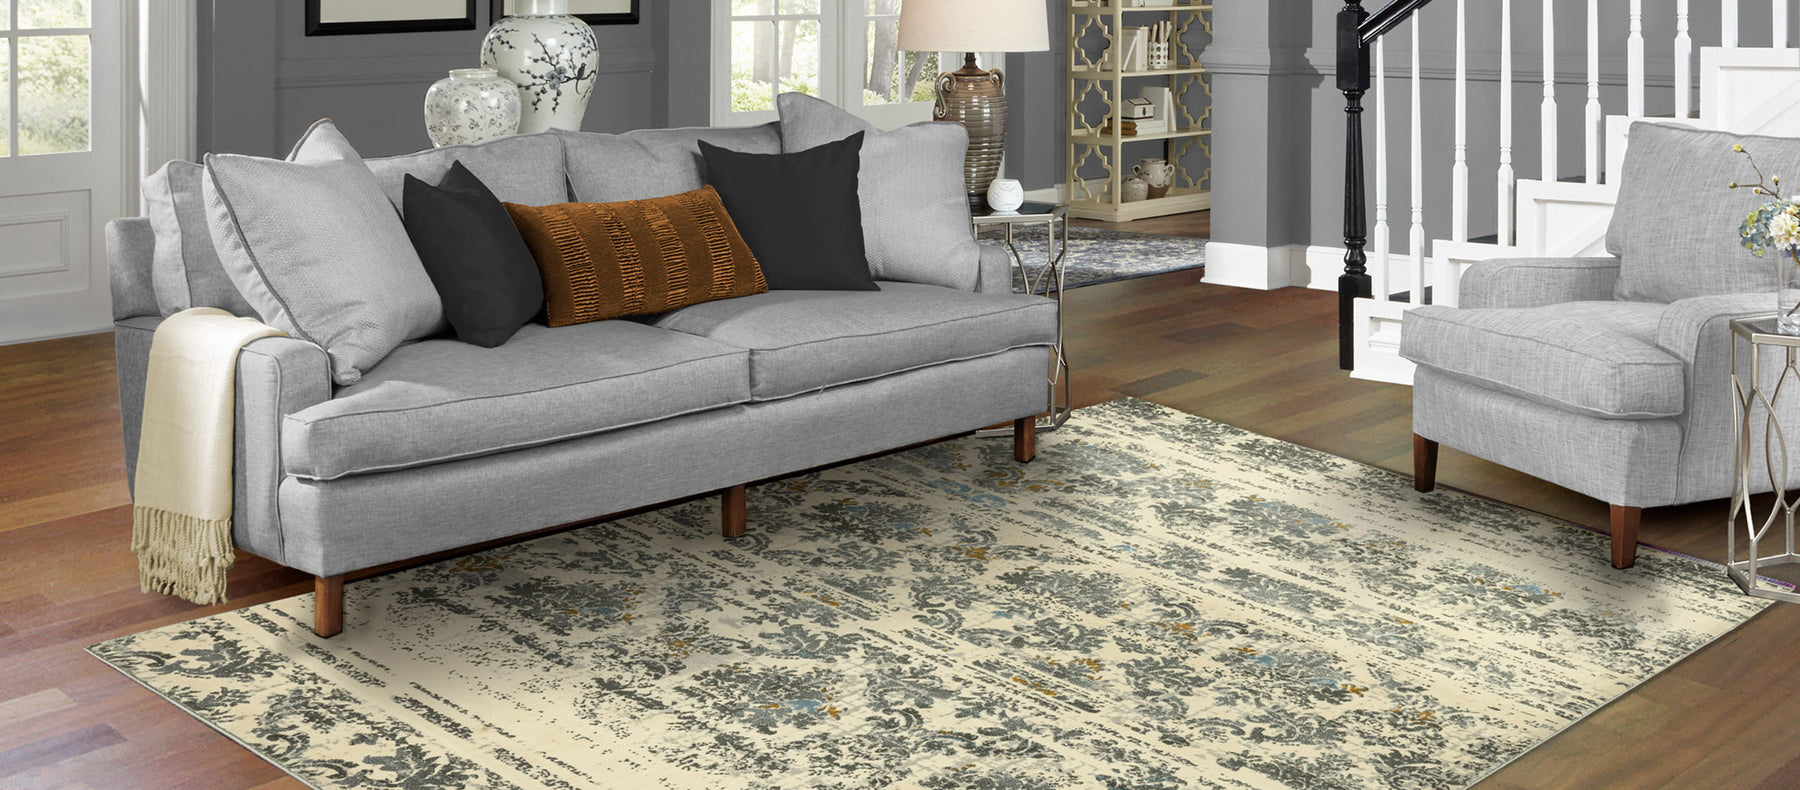 5 Reasons Why Gray Rugs are Trending